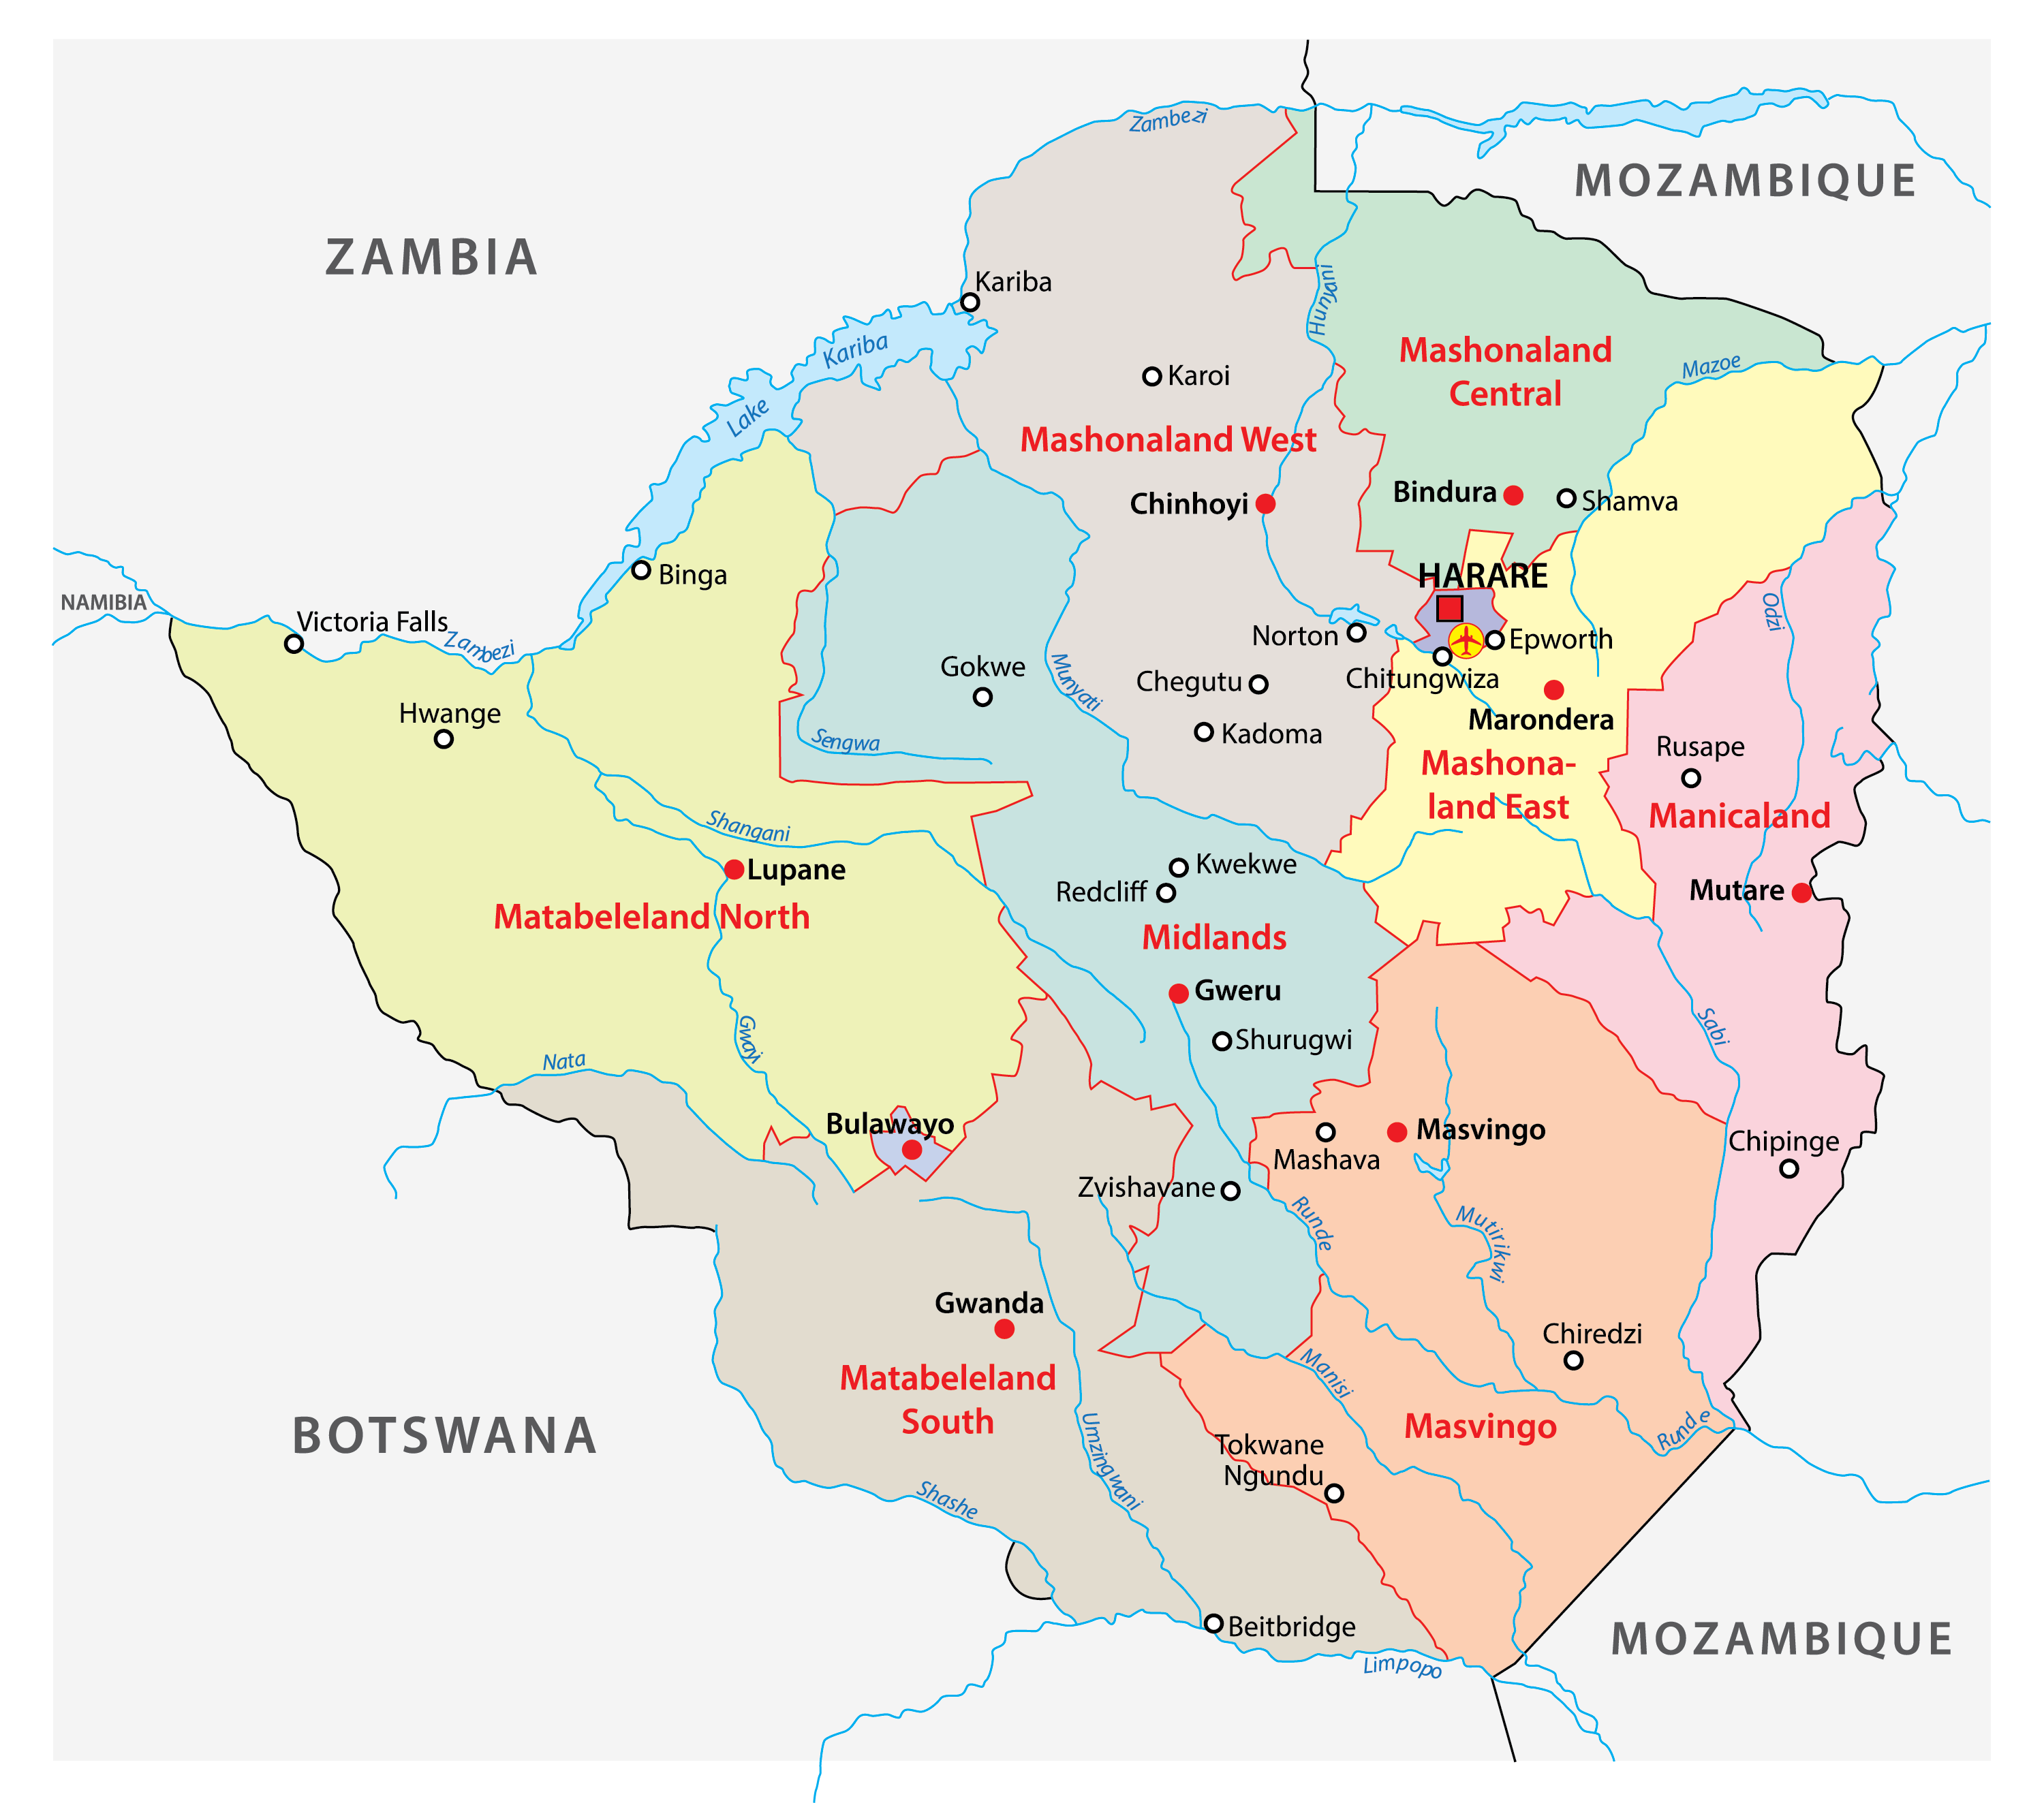 The political map of Zimbabwe displaying its 8 provinces with their capitals and 2 cities with provincial status.